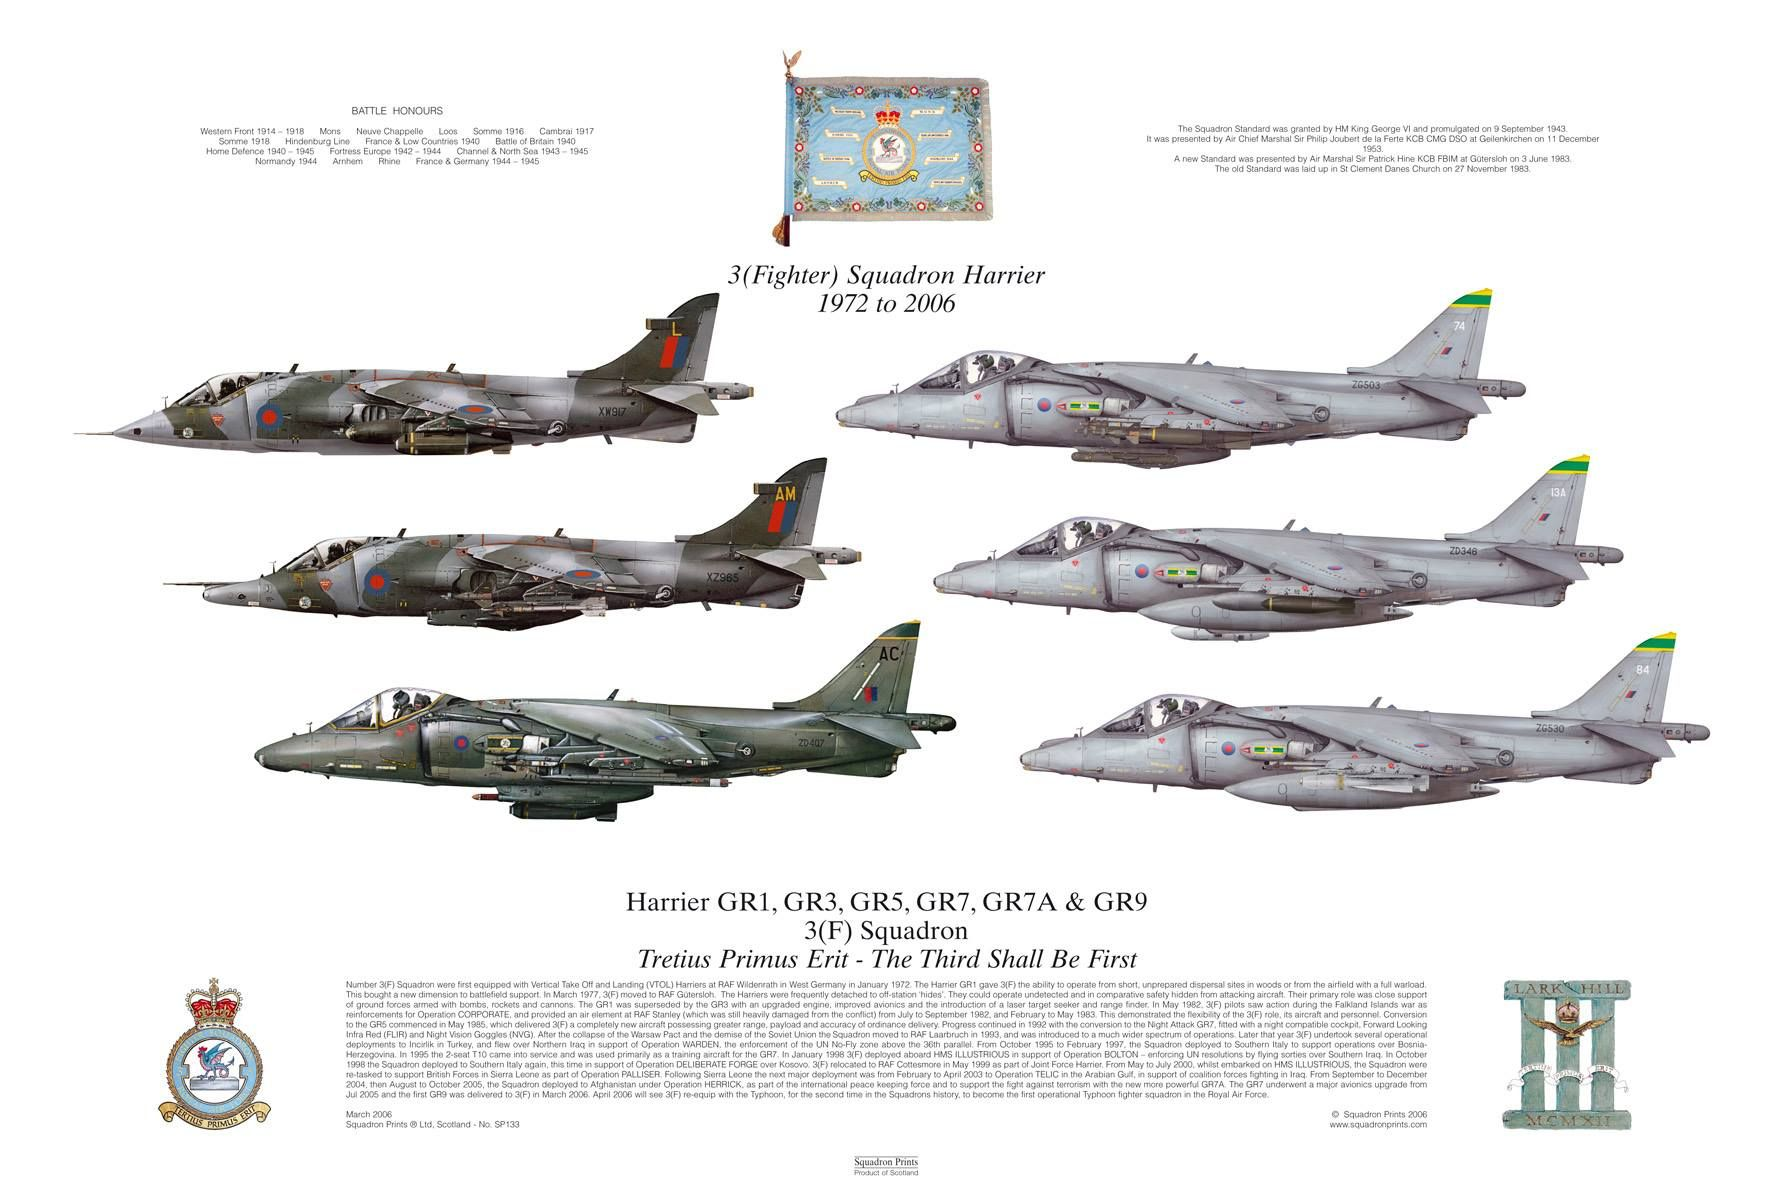 3 (Fighter) Squadron Harrier from 1972 to 2006 | Military